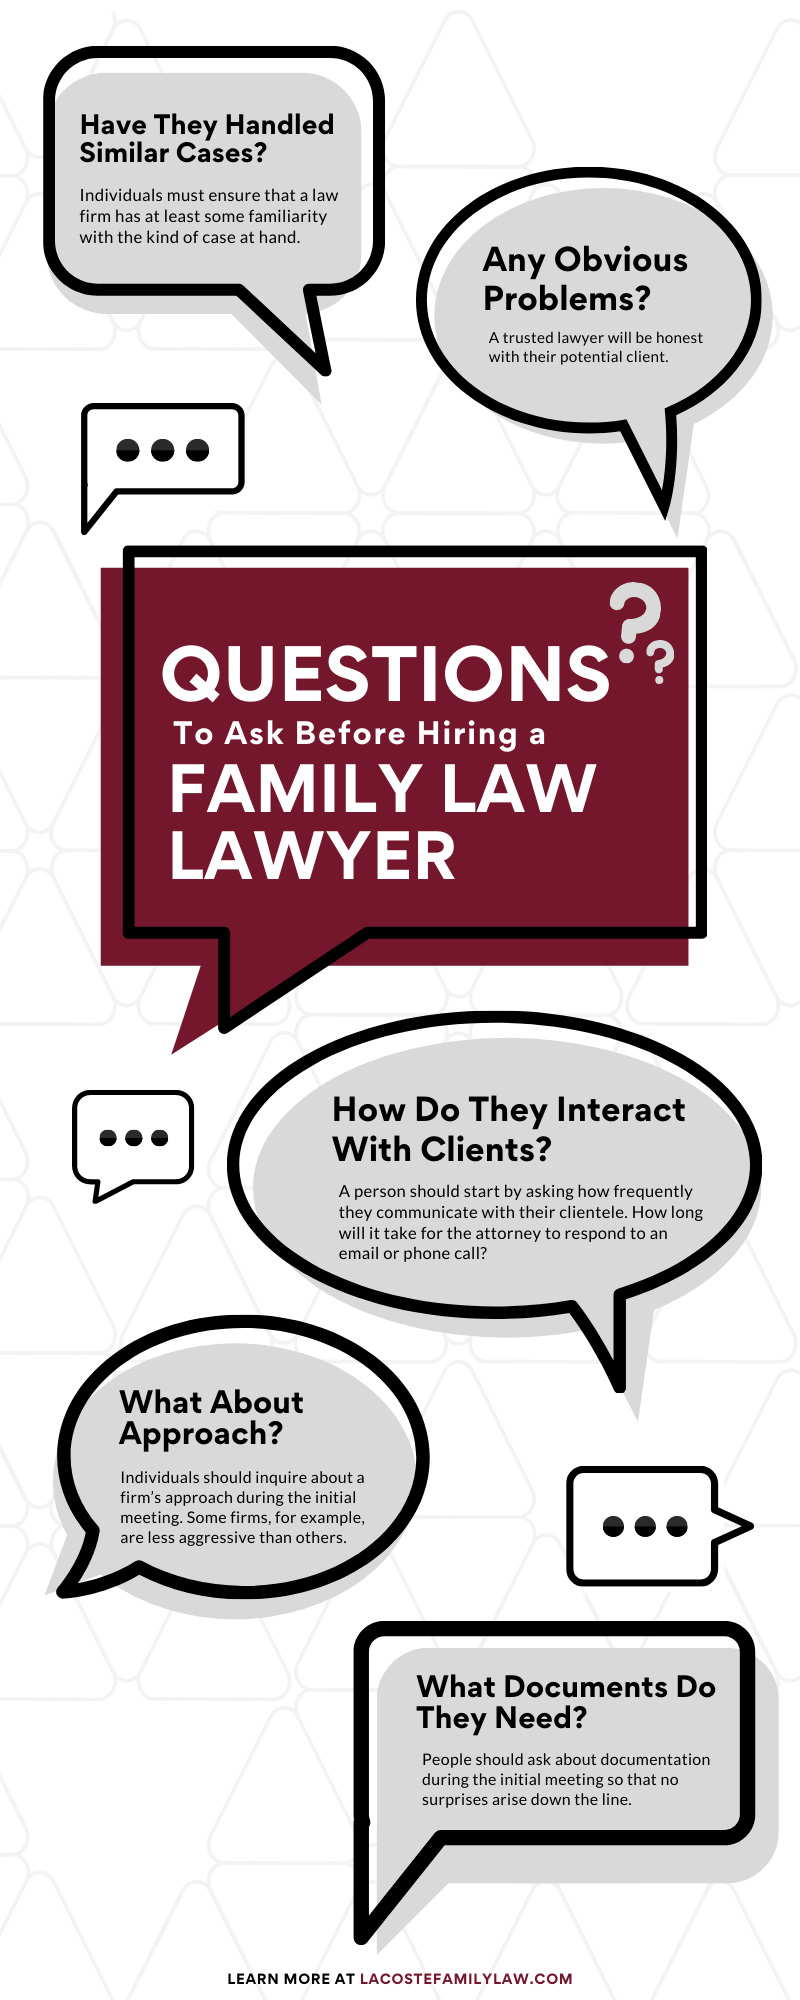 Questions to Ask Before Hiring a Family Law Lawyer